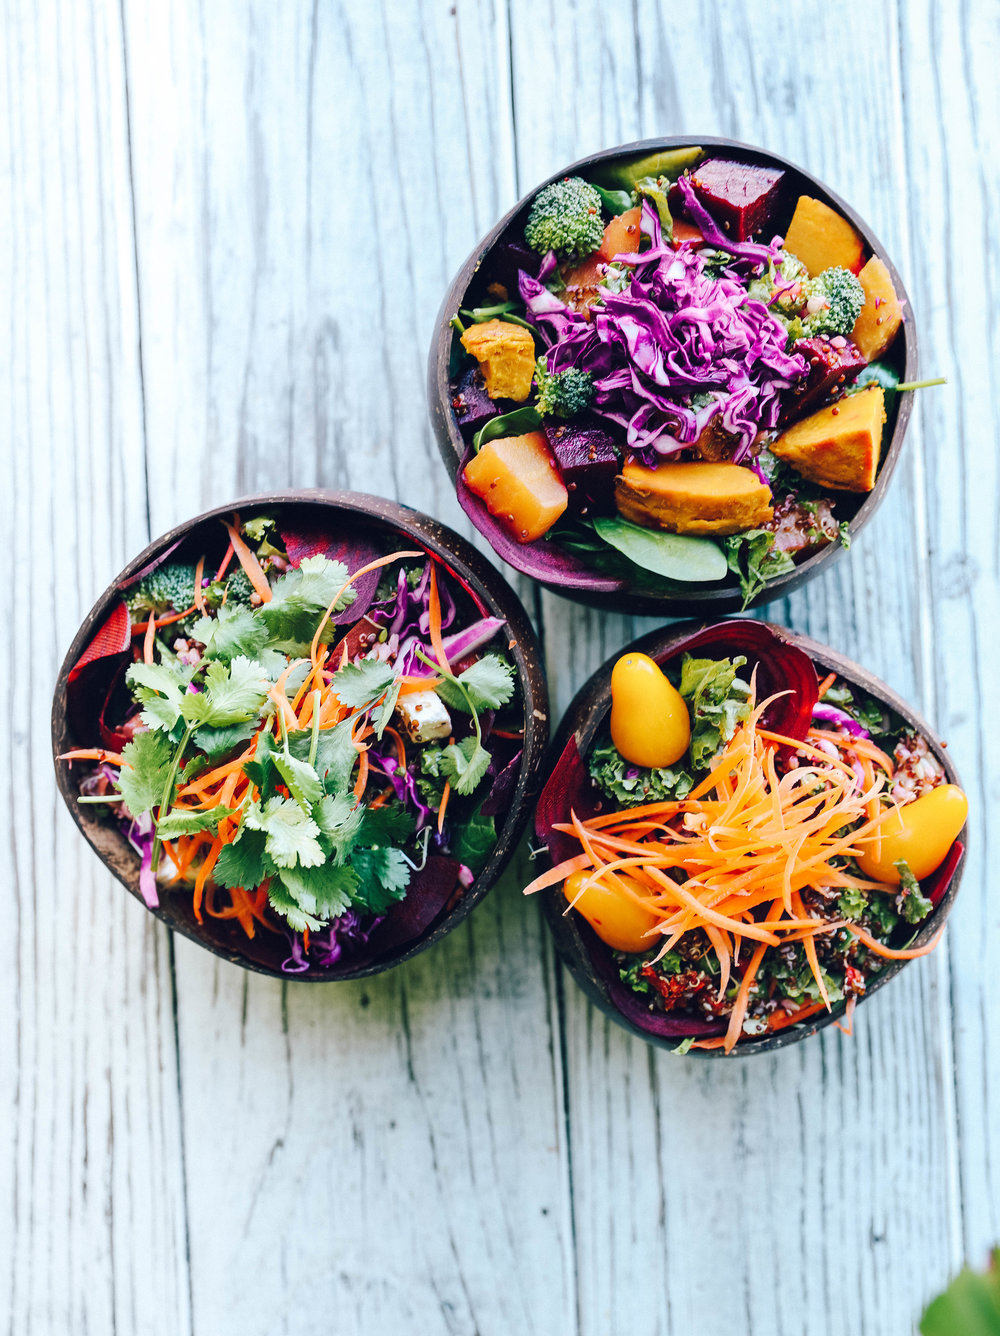 LEFT OVER BOWLS-NEED A WAY TO USE UP YOUR LEFT OVERS? PUT EVERYTHING OUT AND LET PEOPLE MAKE THEIR OWN BOWL! BUILD YOUR OWN NOURISH BOWL MEALS ARE THE BEST AND A GOOD WAY TO FEED A CROWD!